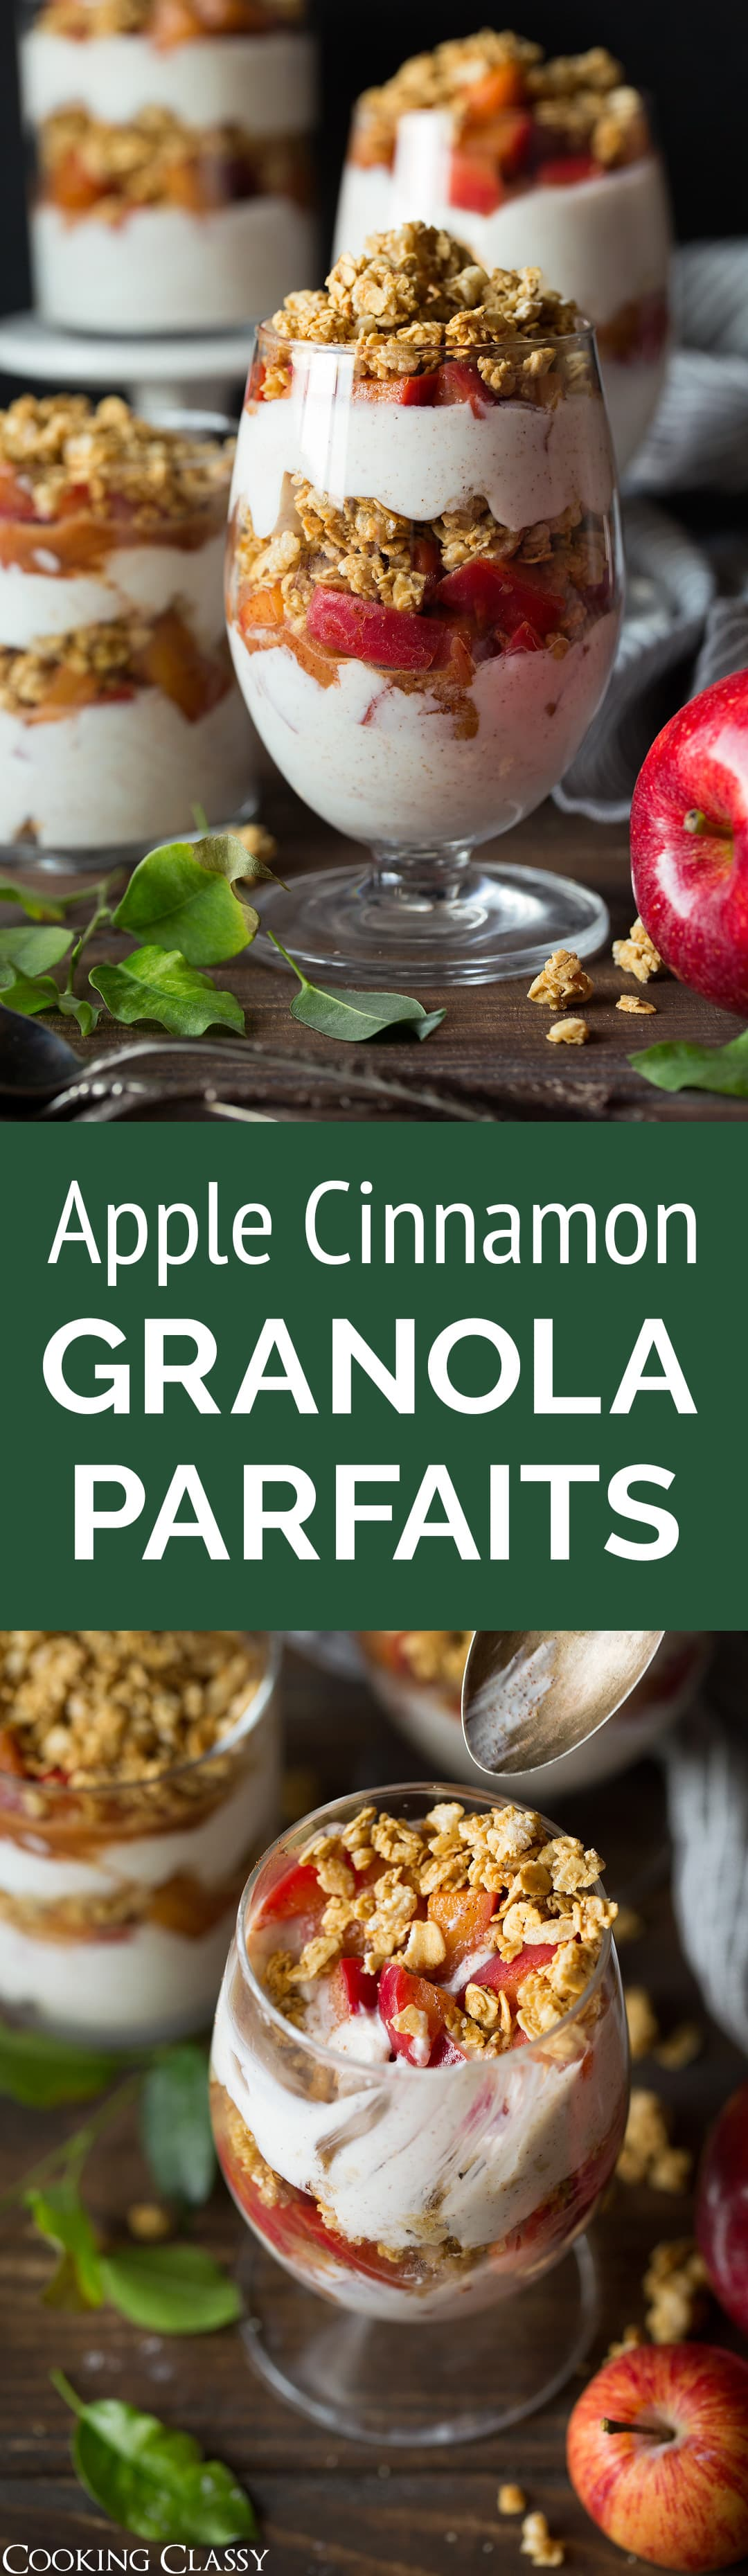 Apple Cinnamon Granola Parfaits - These parfaits make the perfect breakfast treat! They are made up of three delicious layers, a tangy Greek yogurt layer, a perfectly spiced and softened apple layer, and a crunchy honey granola layer. Try them and you'll know why I made them twice in one week! #apple #granolaparfait #yogurtparfait #breakfast #healthyrecipe #applepie